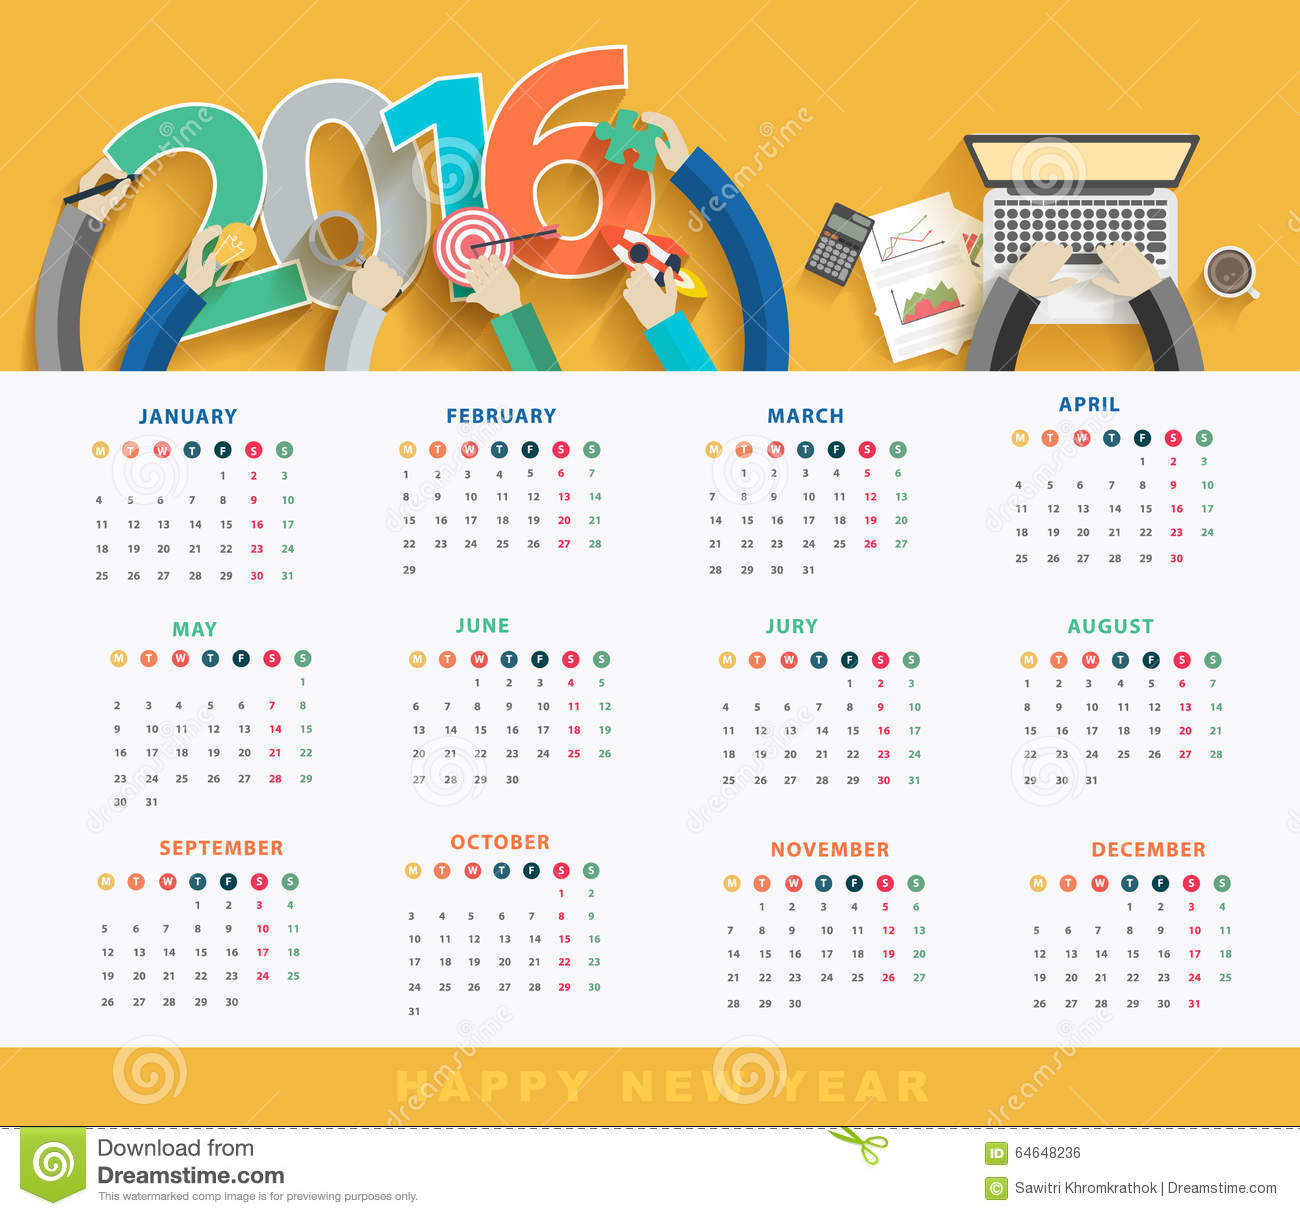 Calendar Design Free Vector : Vector business calendar stock illustration